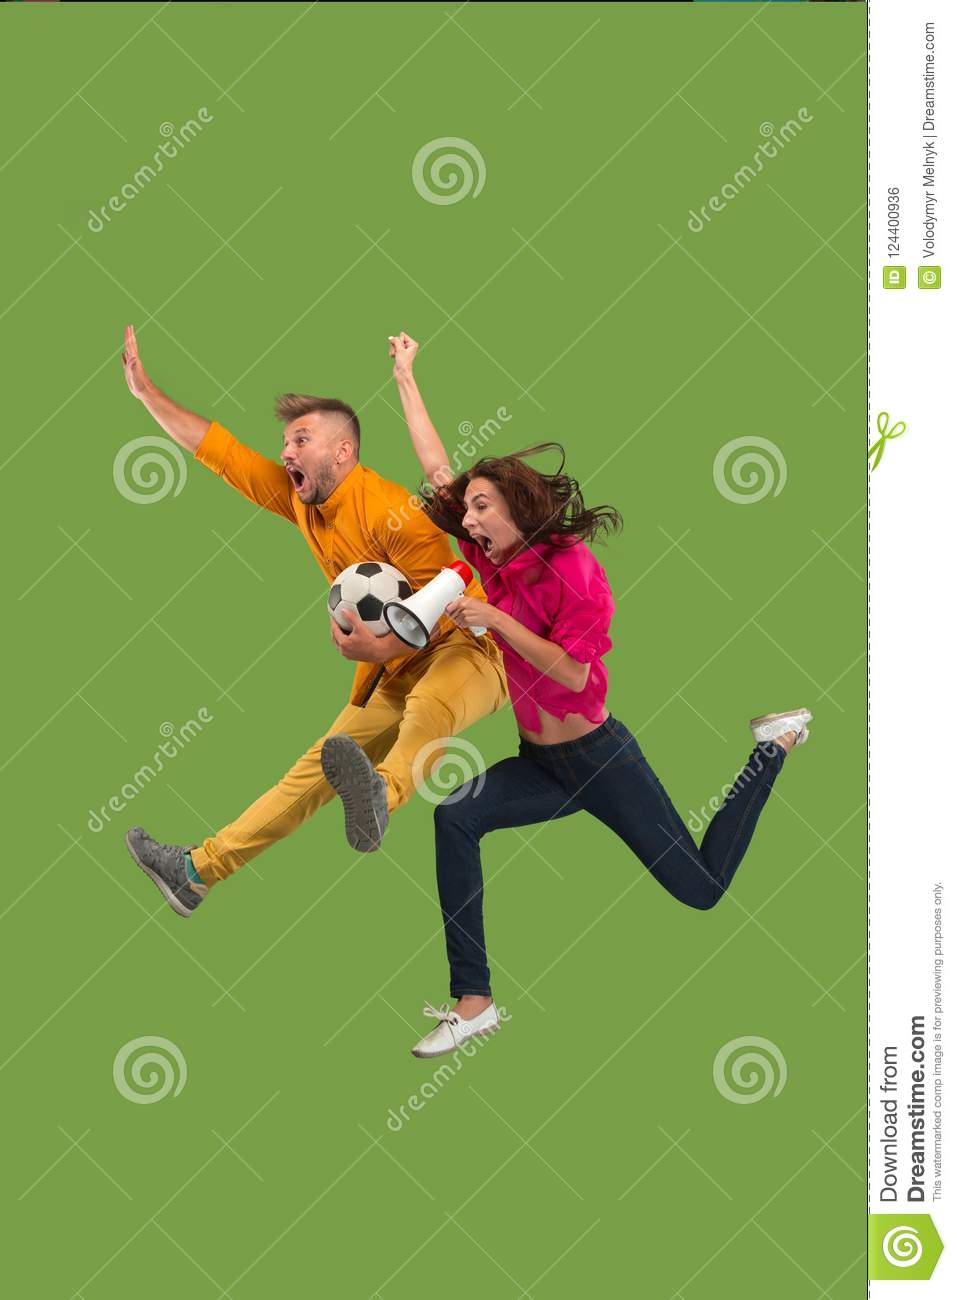 Forward to the victory.The young couple as soccer football player jumping and kicking the ball at studio on a green